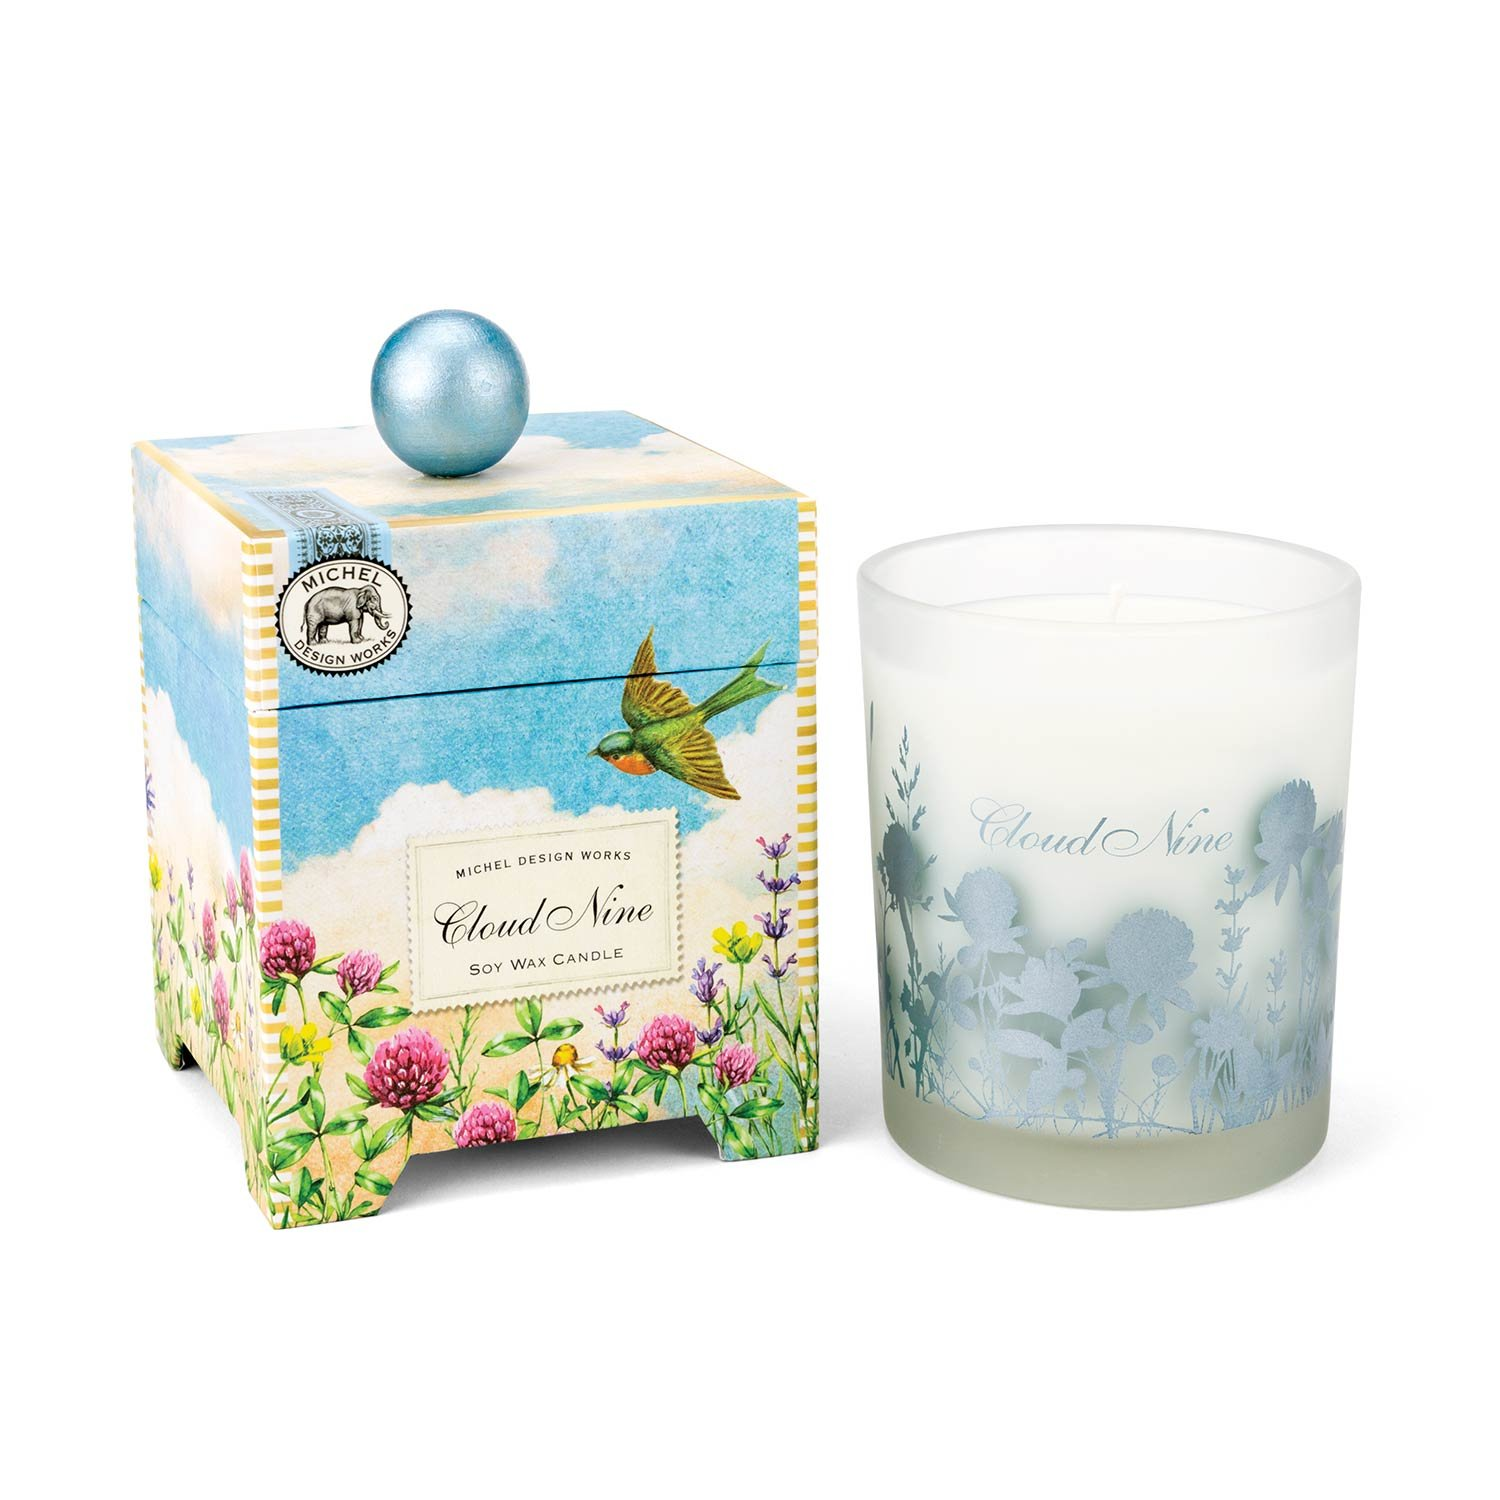 Michel Design Works Gift Boxed Soy Wax Candle, 14-Ounce, Cloud Nine